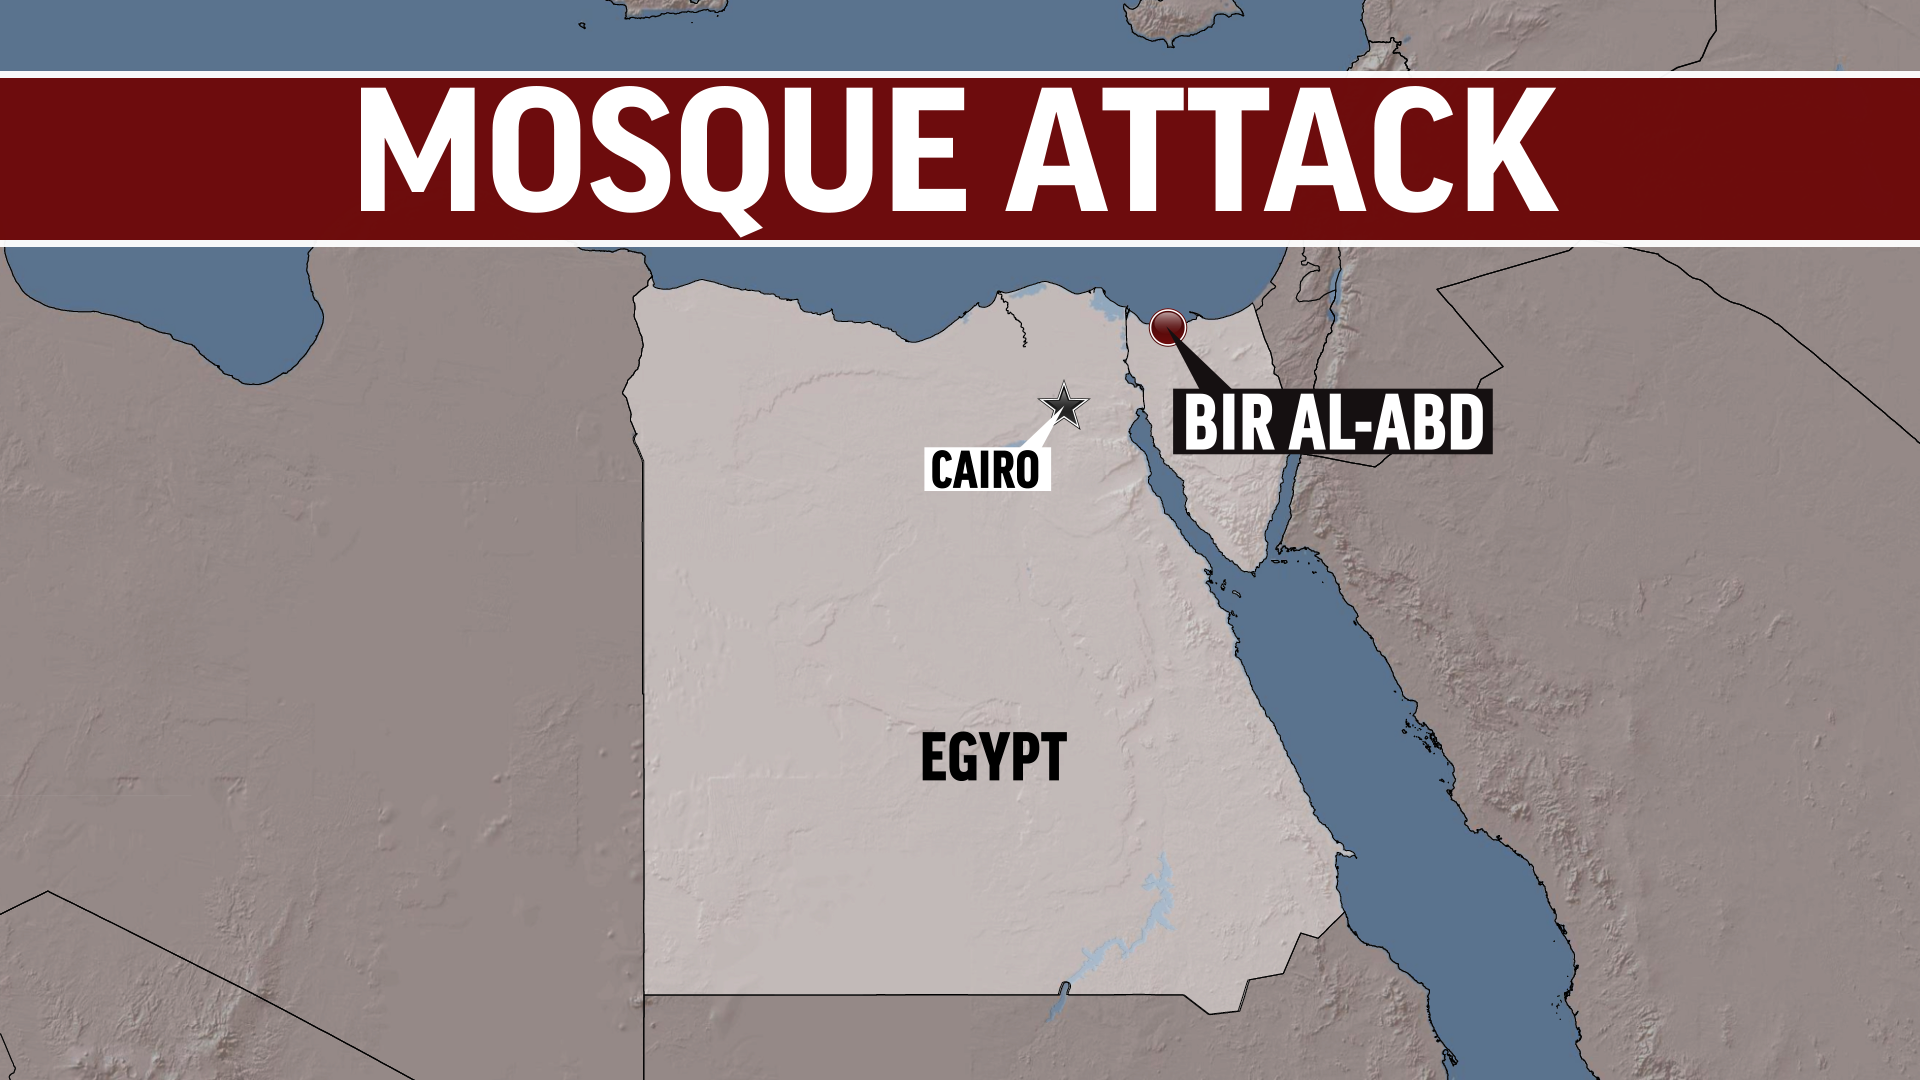 (AP) An attack at a Mosque in Egypt has killed 305 people